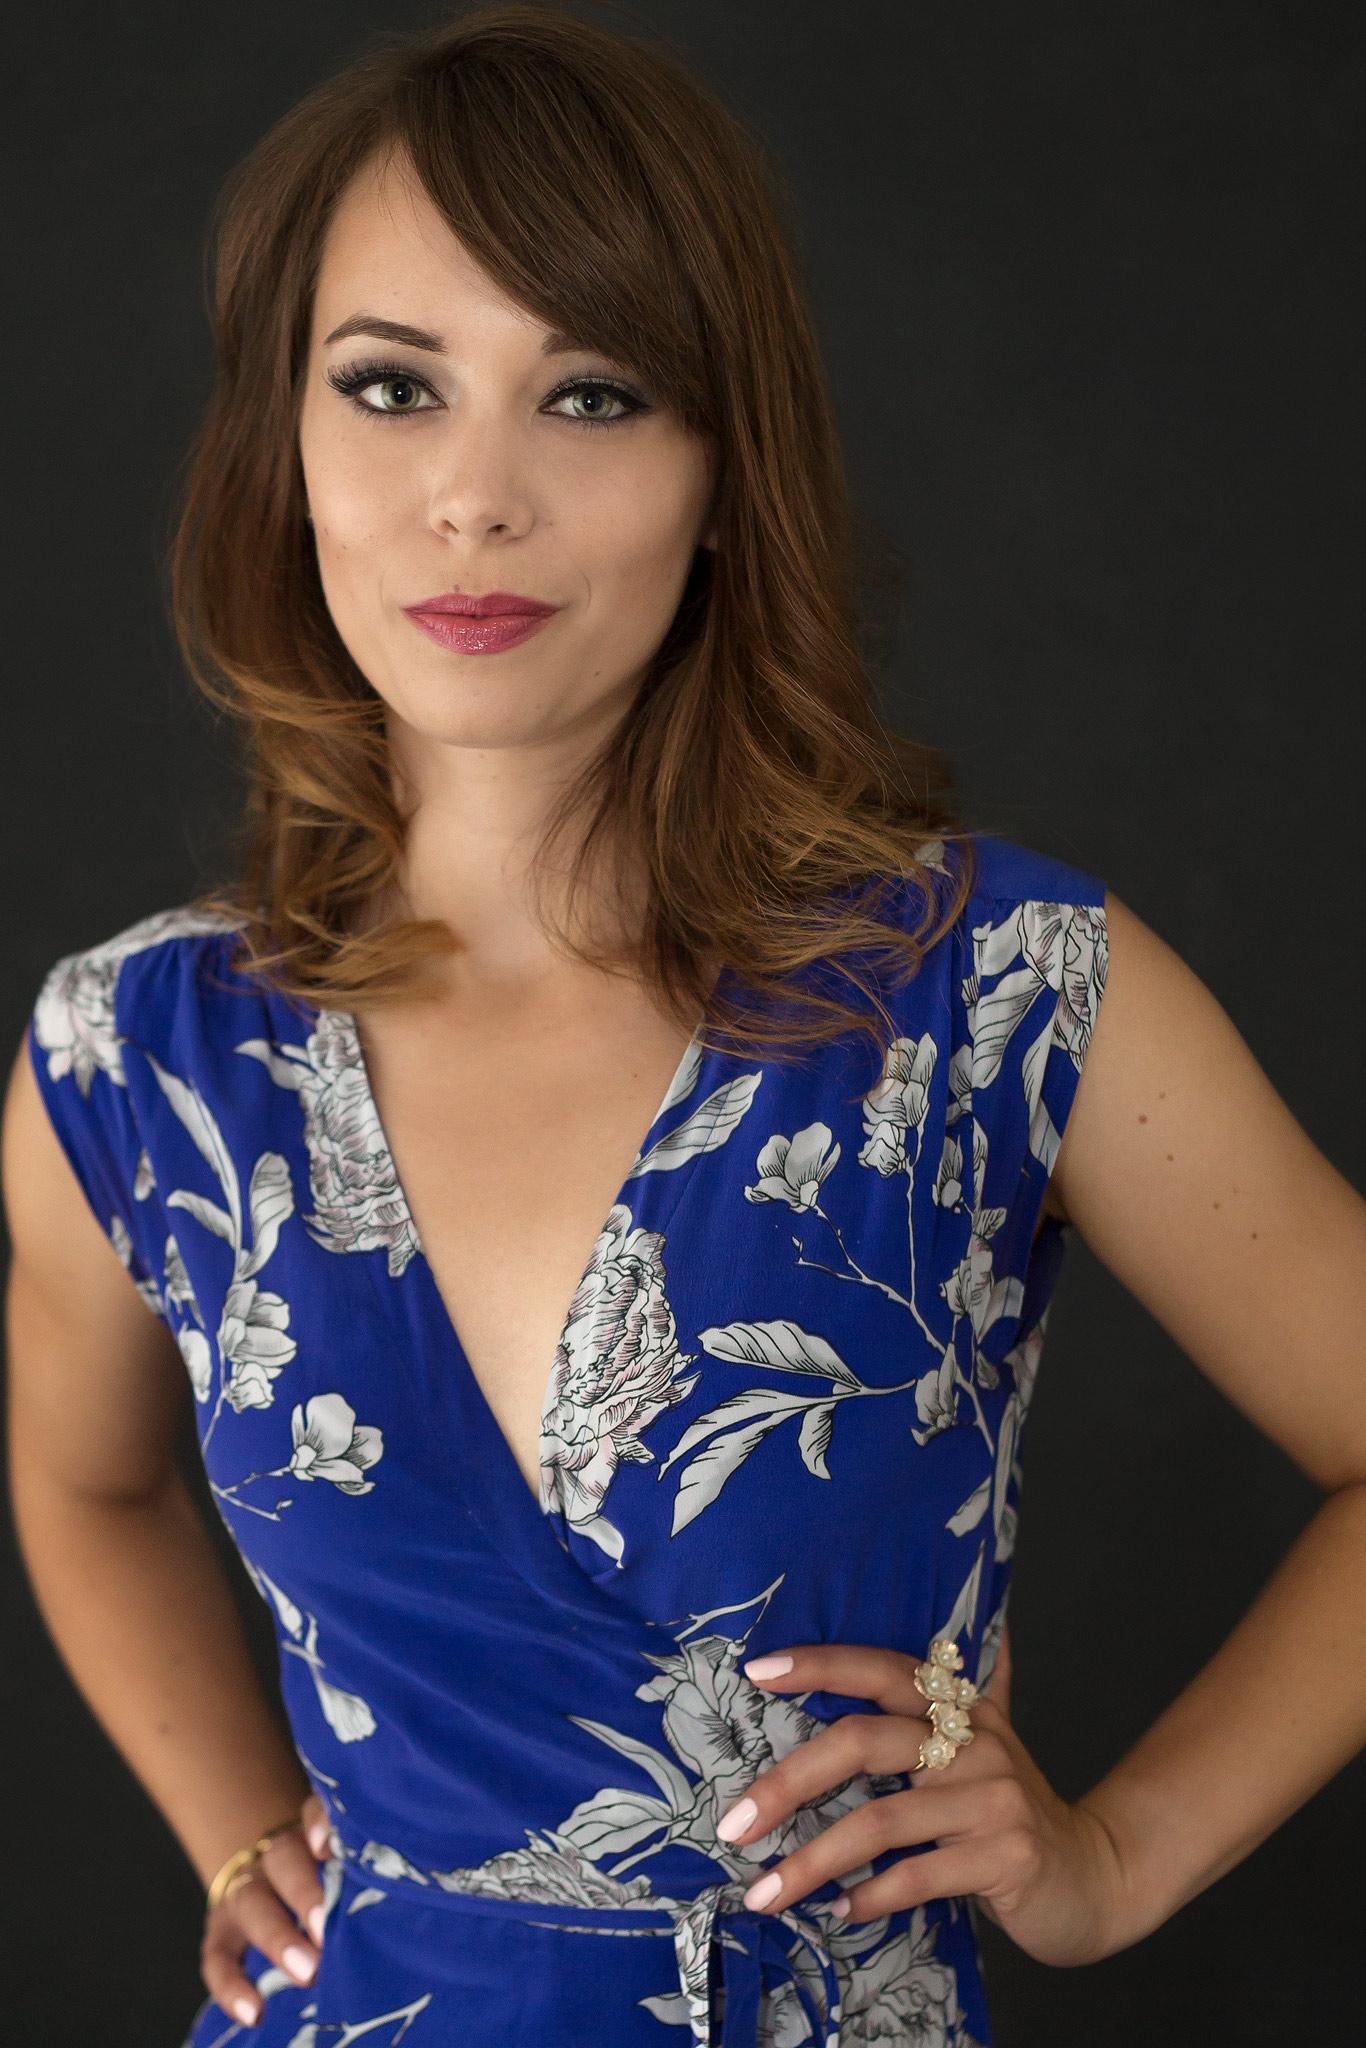 Rent-Frock-Repeat-Carole-B-Eves-Floral-Blue-Dress-Couture-Portraits